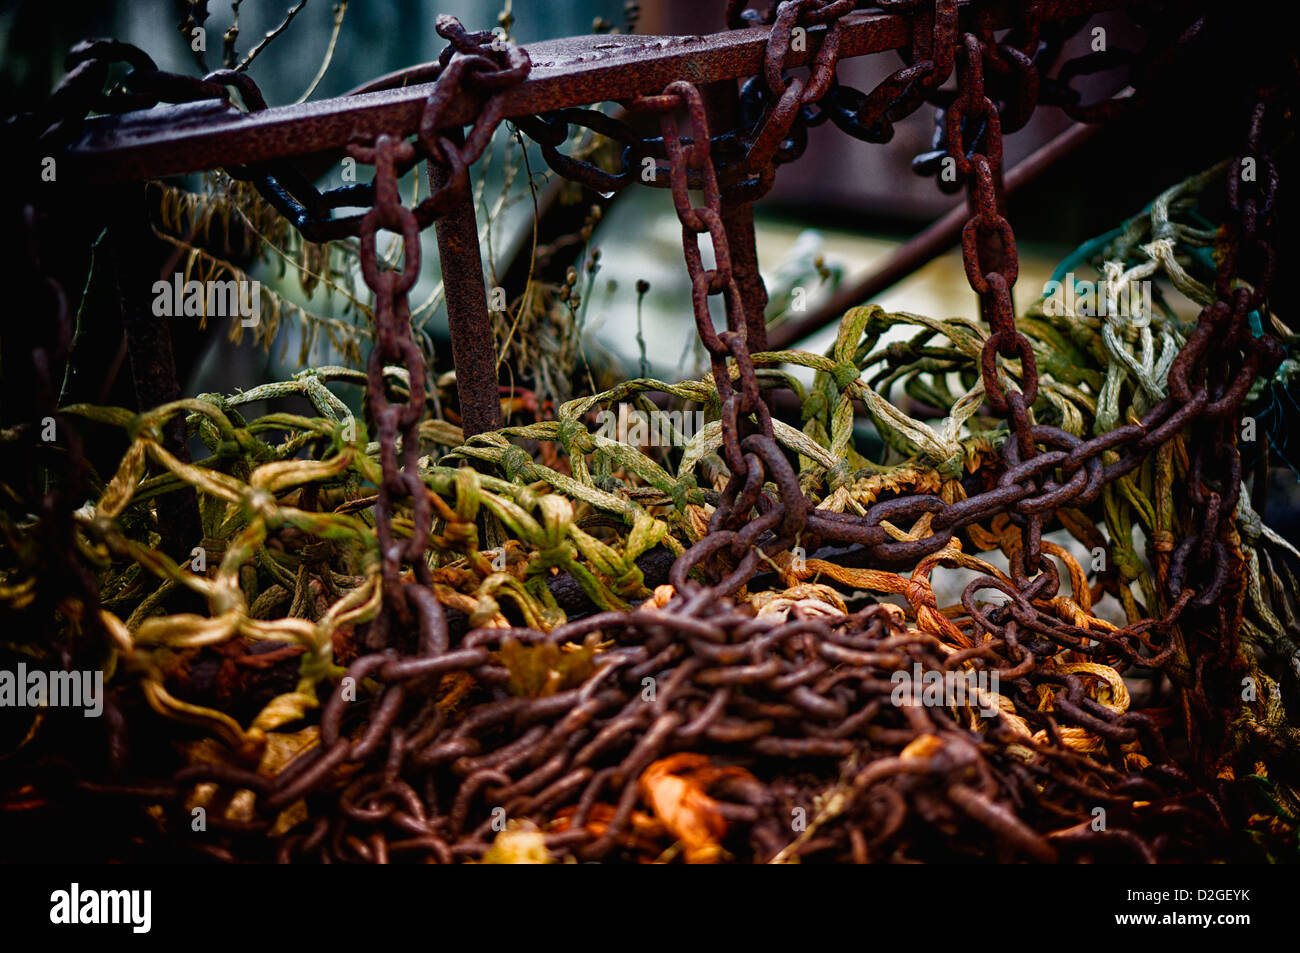 Piled fishing nets that have seen better days. - Stock Image